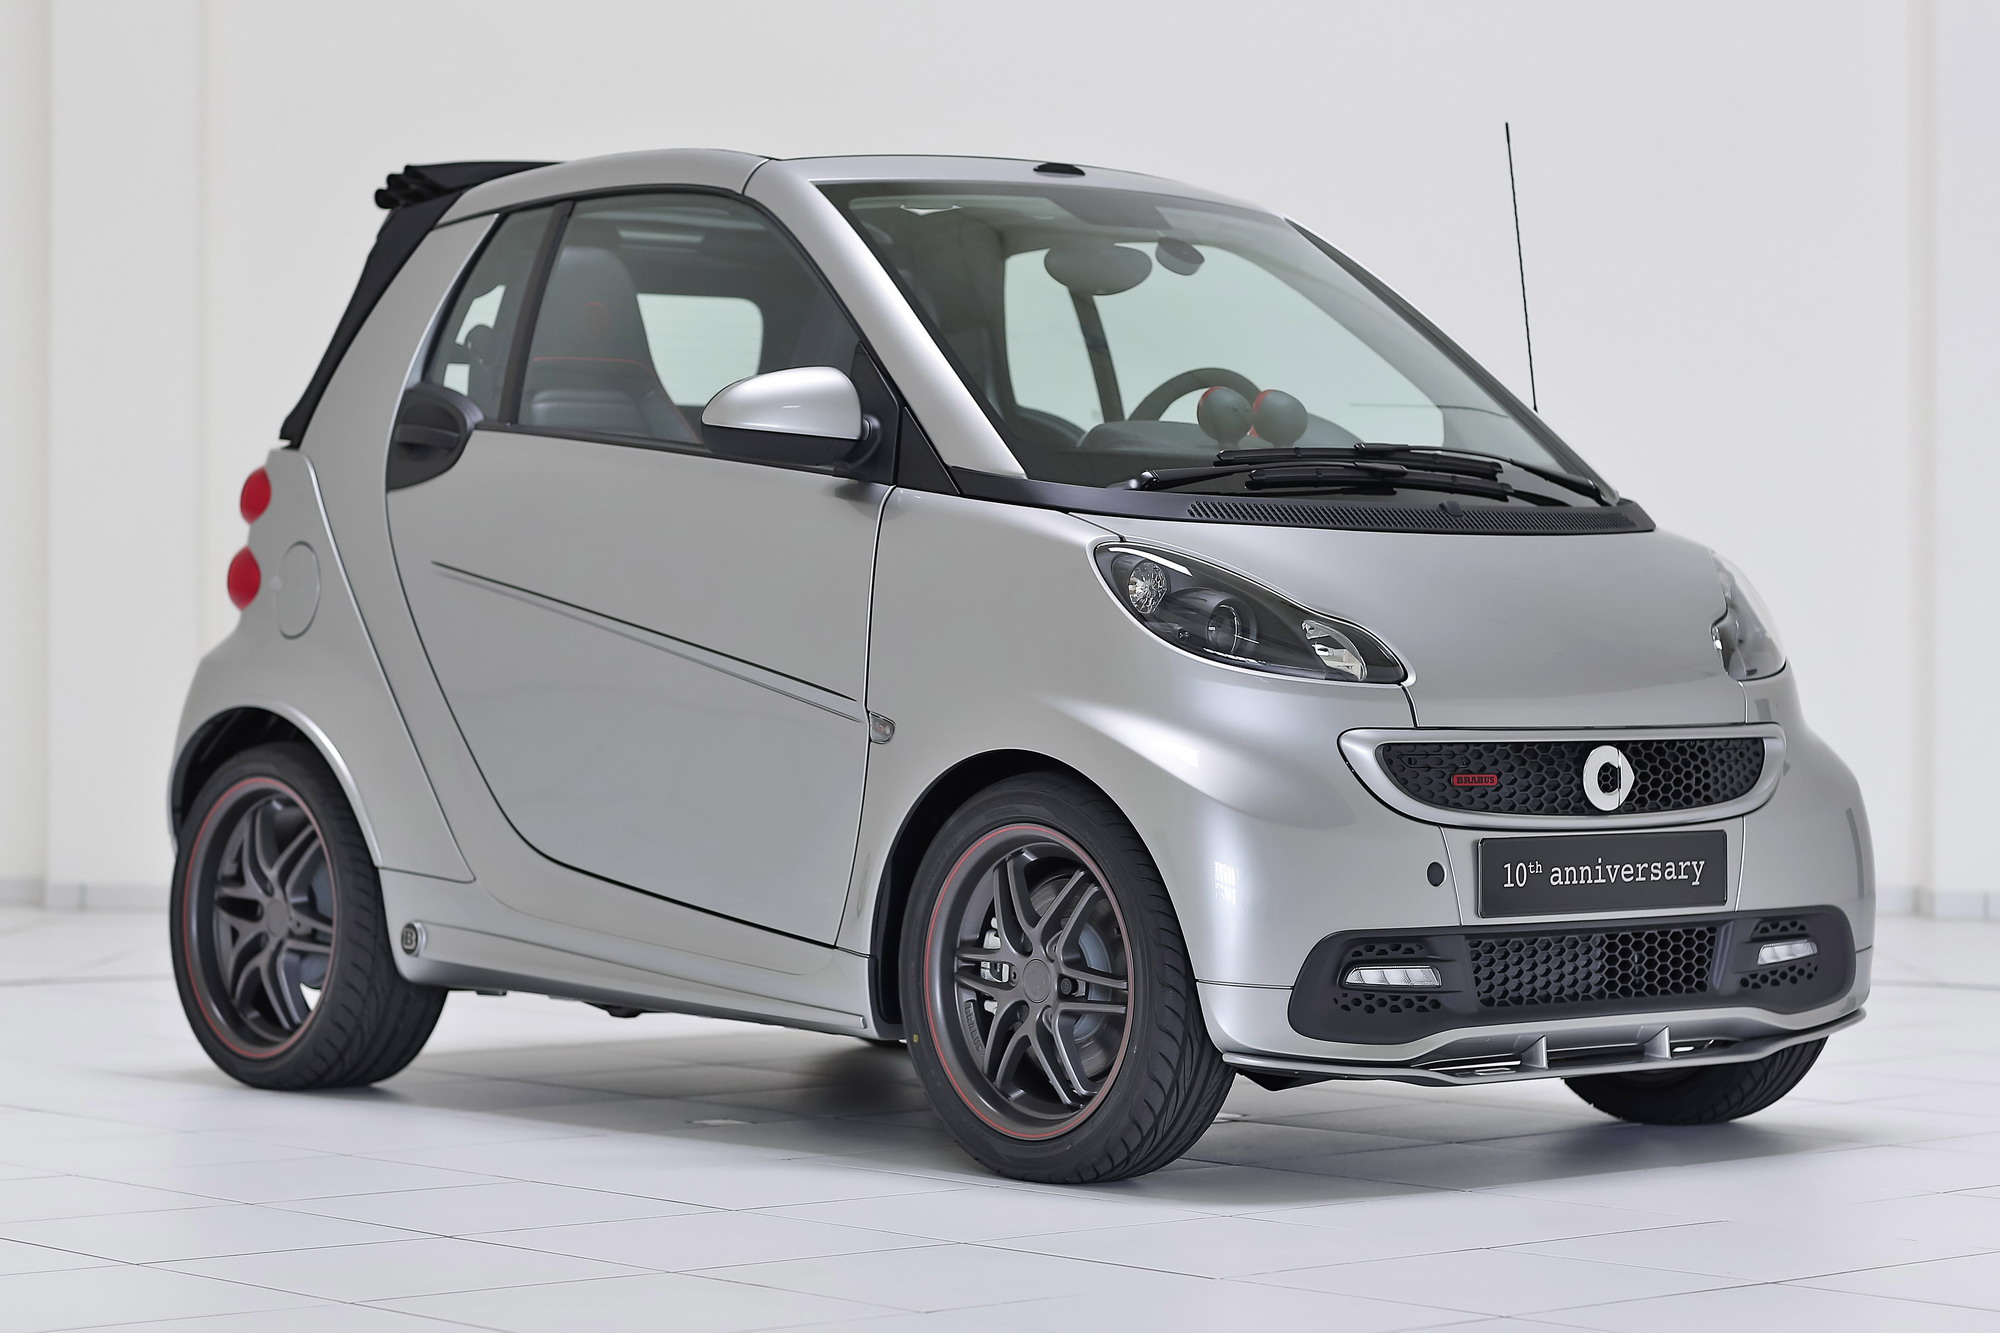 2013 smart fortwo brabus 10th anniversary top speed 2013 smart fortwo brabus 10th anniversary top speed altavistaventures Choice Image